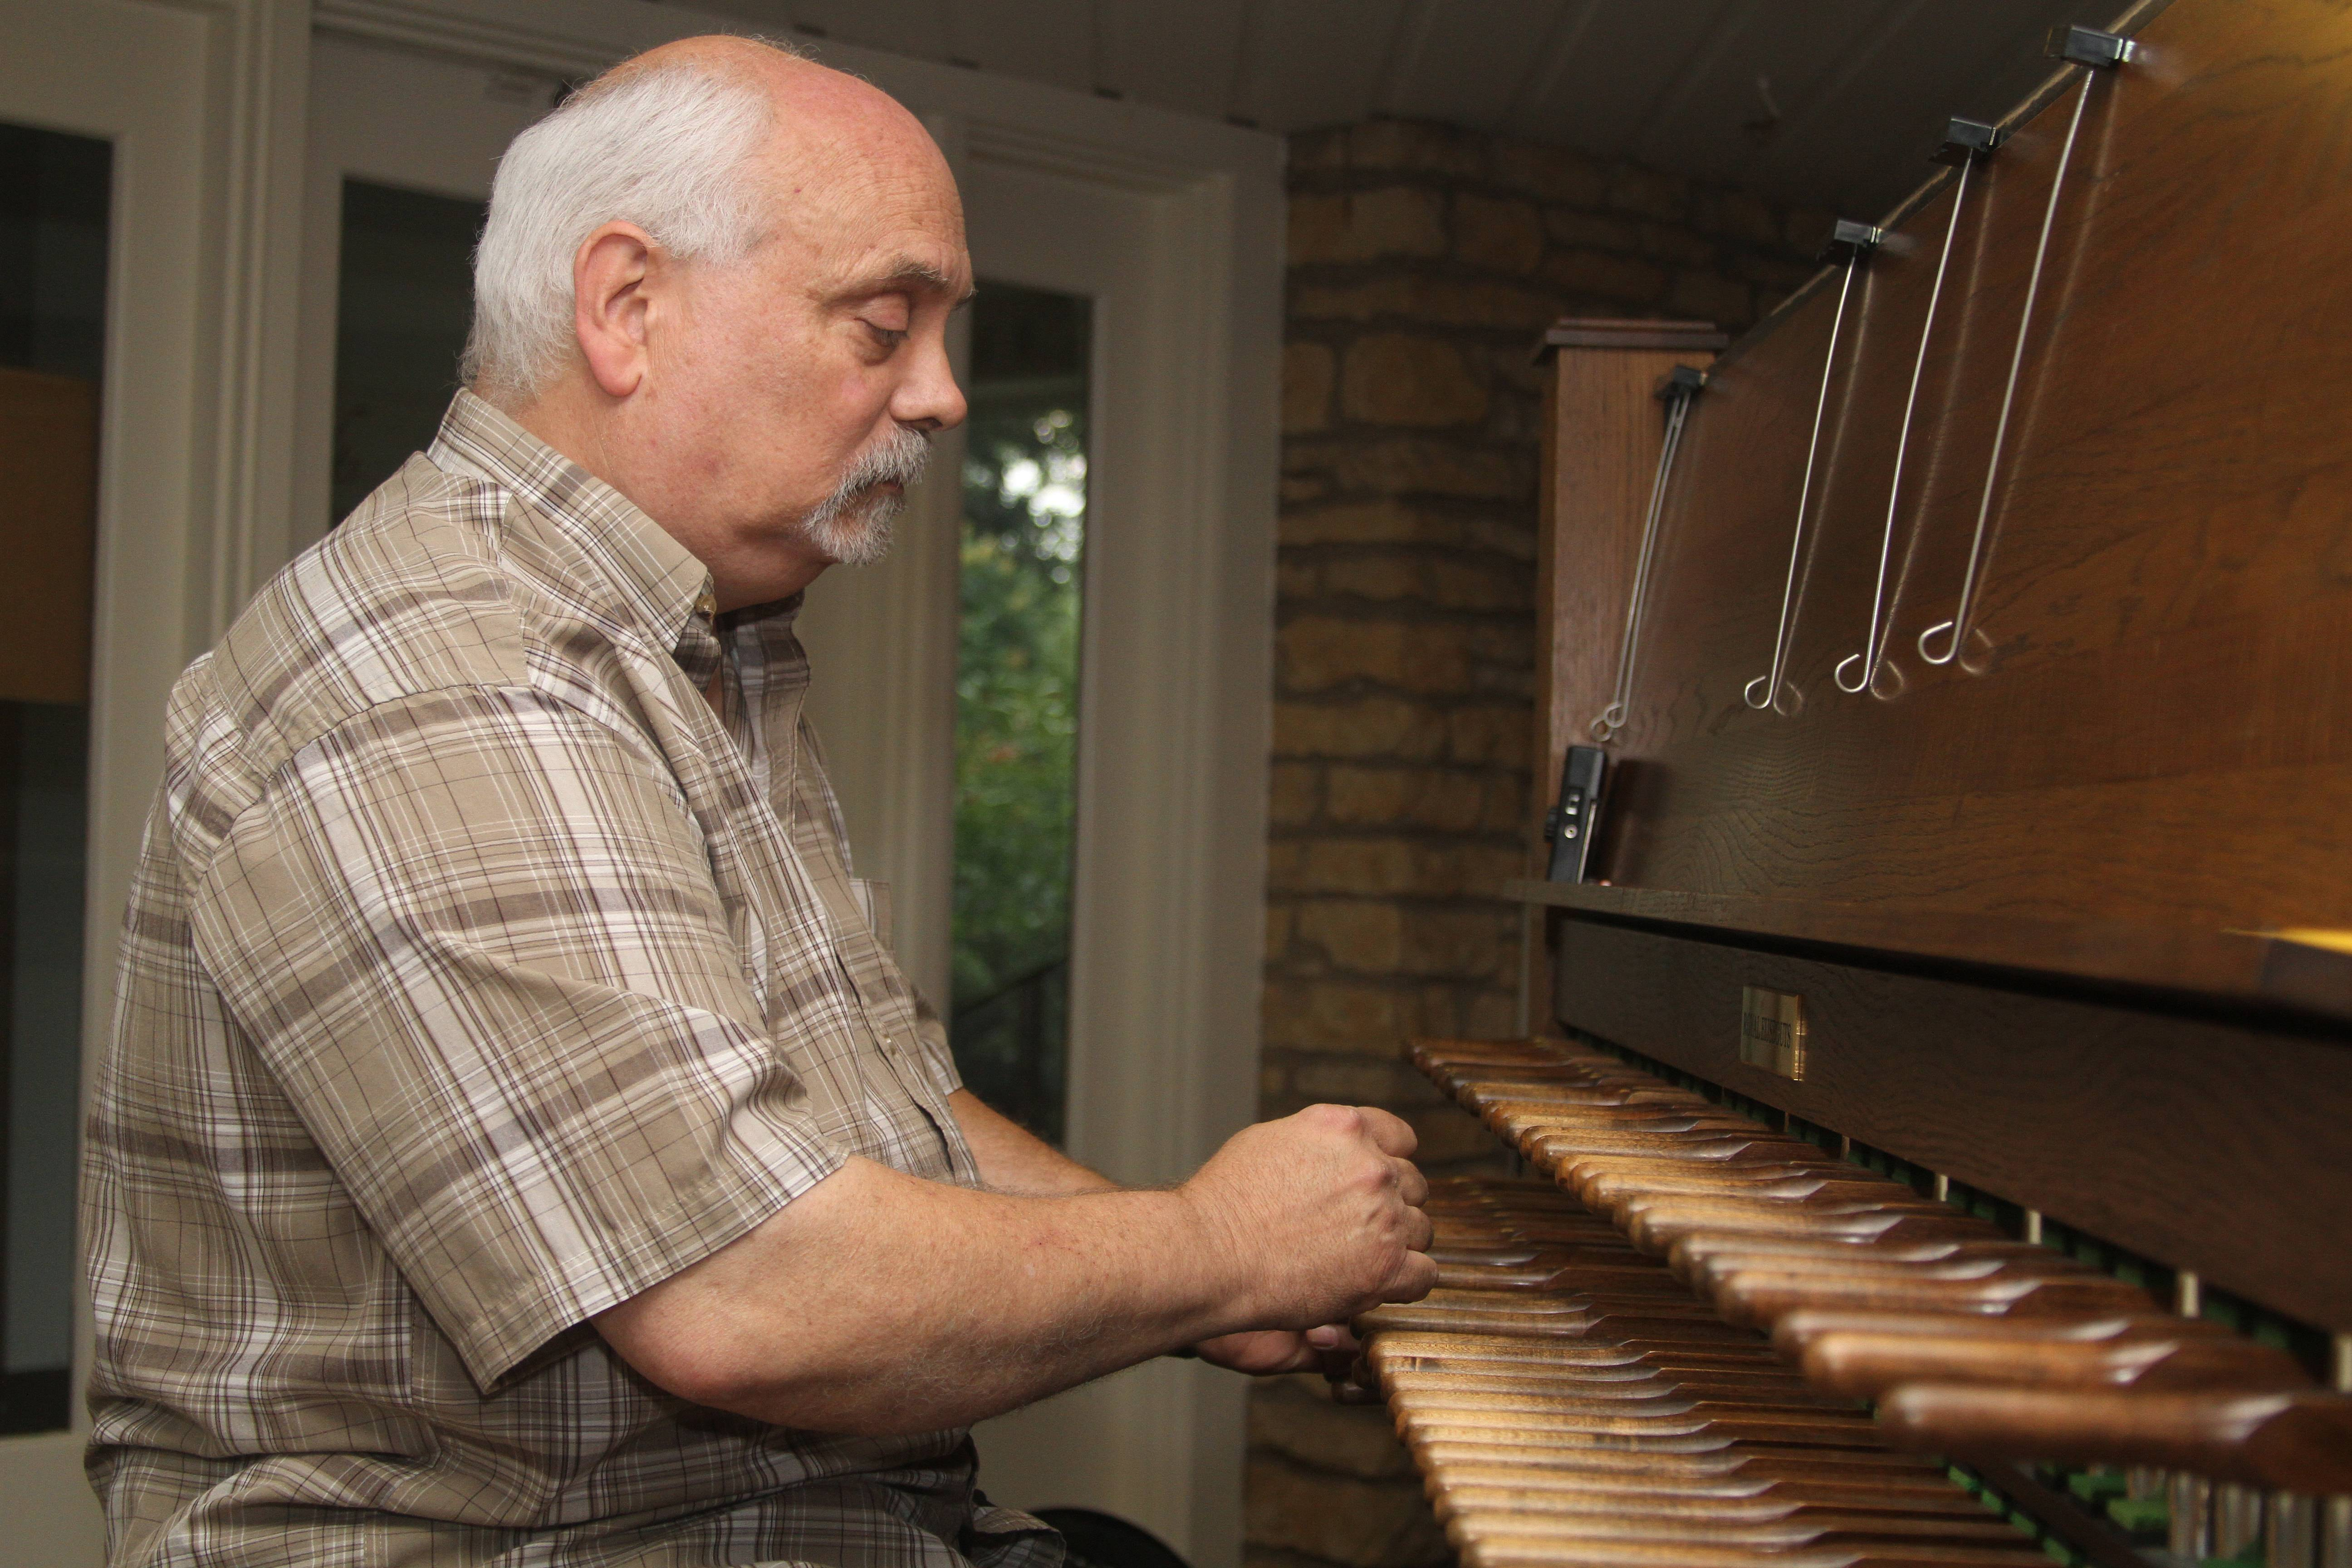 Tim Sleep, Naperville's city carillonneur, will be one of the featured performers this year as part of the summer recital series.